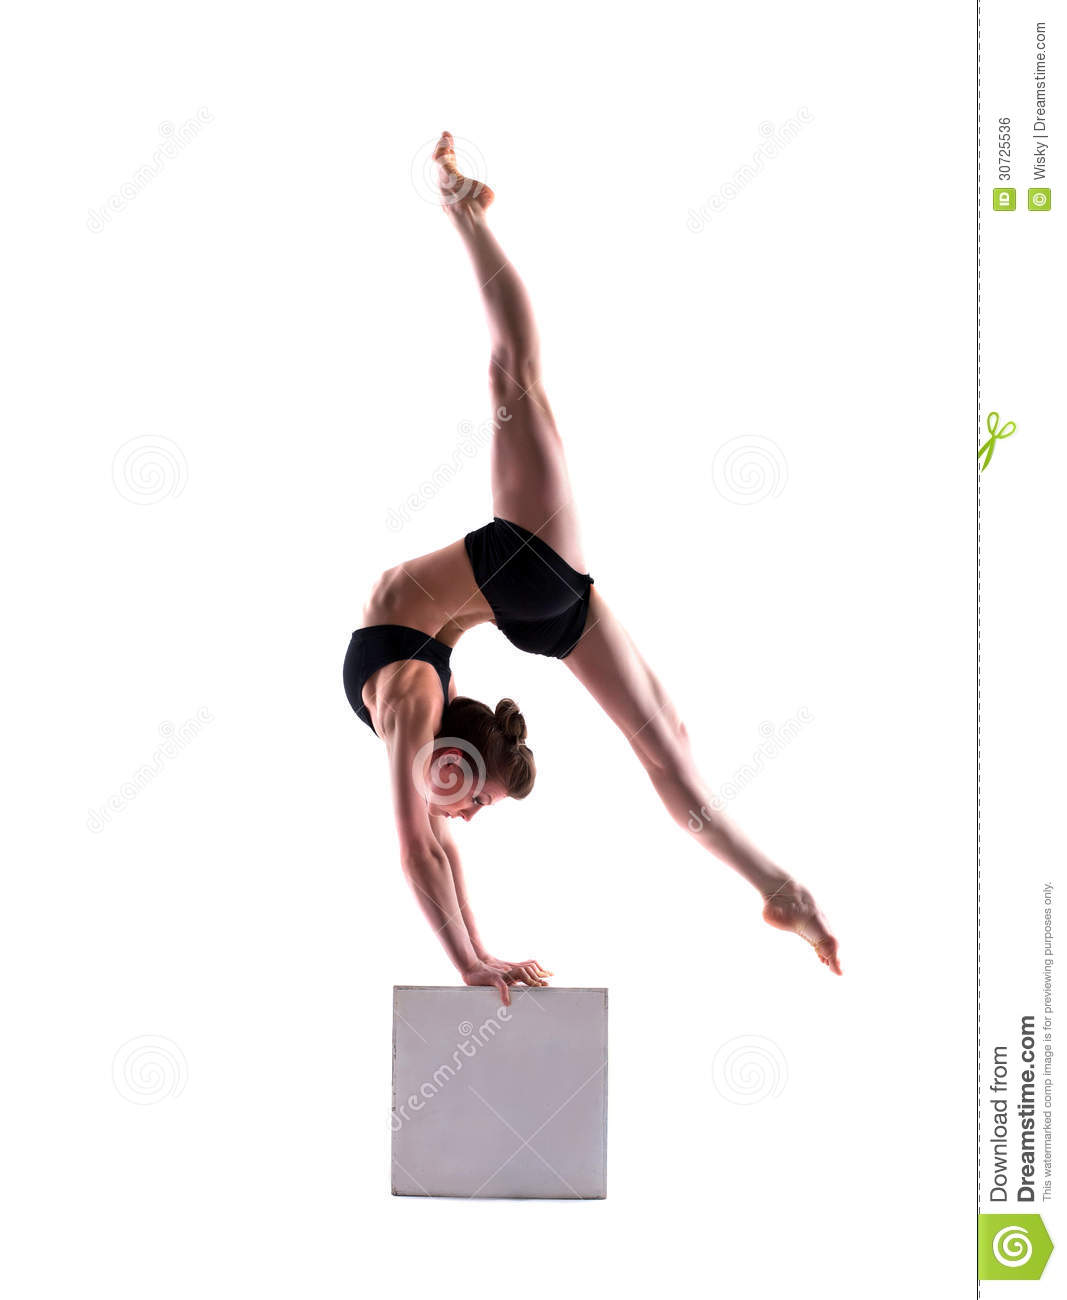 e34a929db44a Flexible Sporty Girl Posing On Cube Stock Photo - Image of beautiful ...